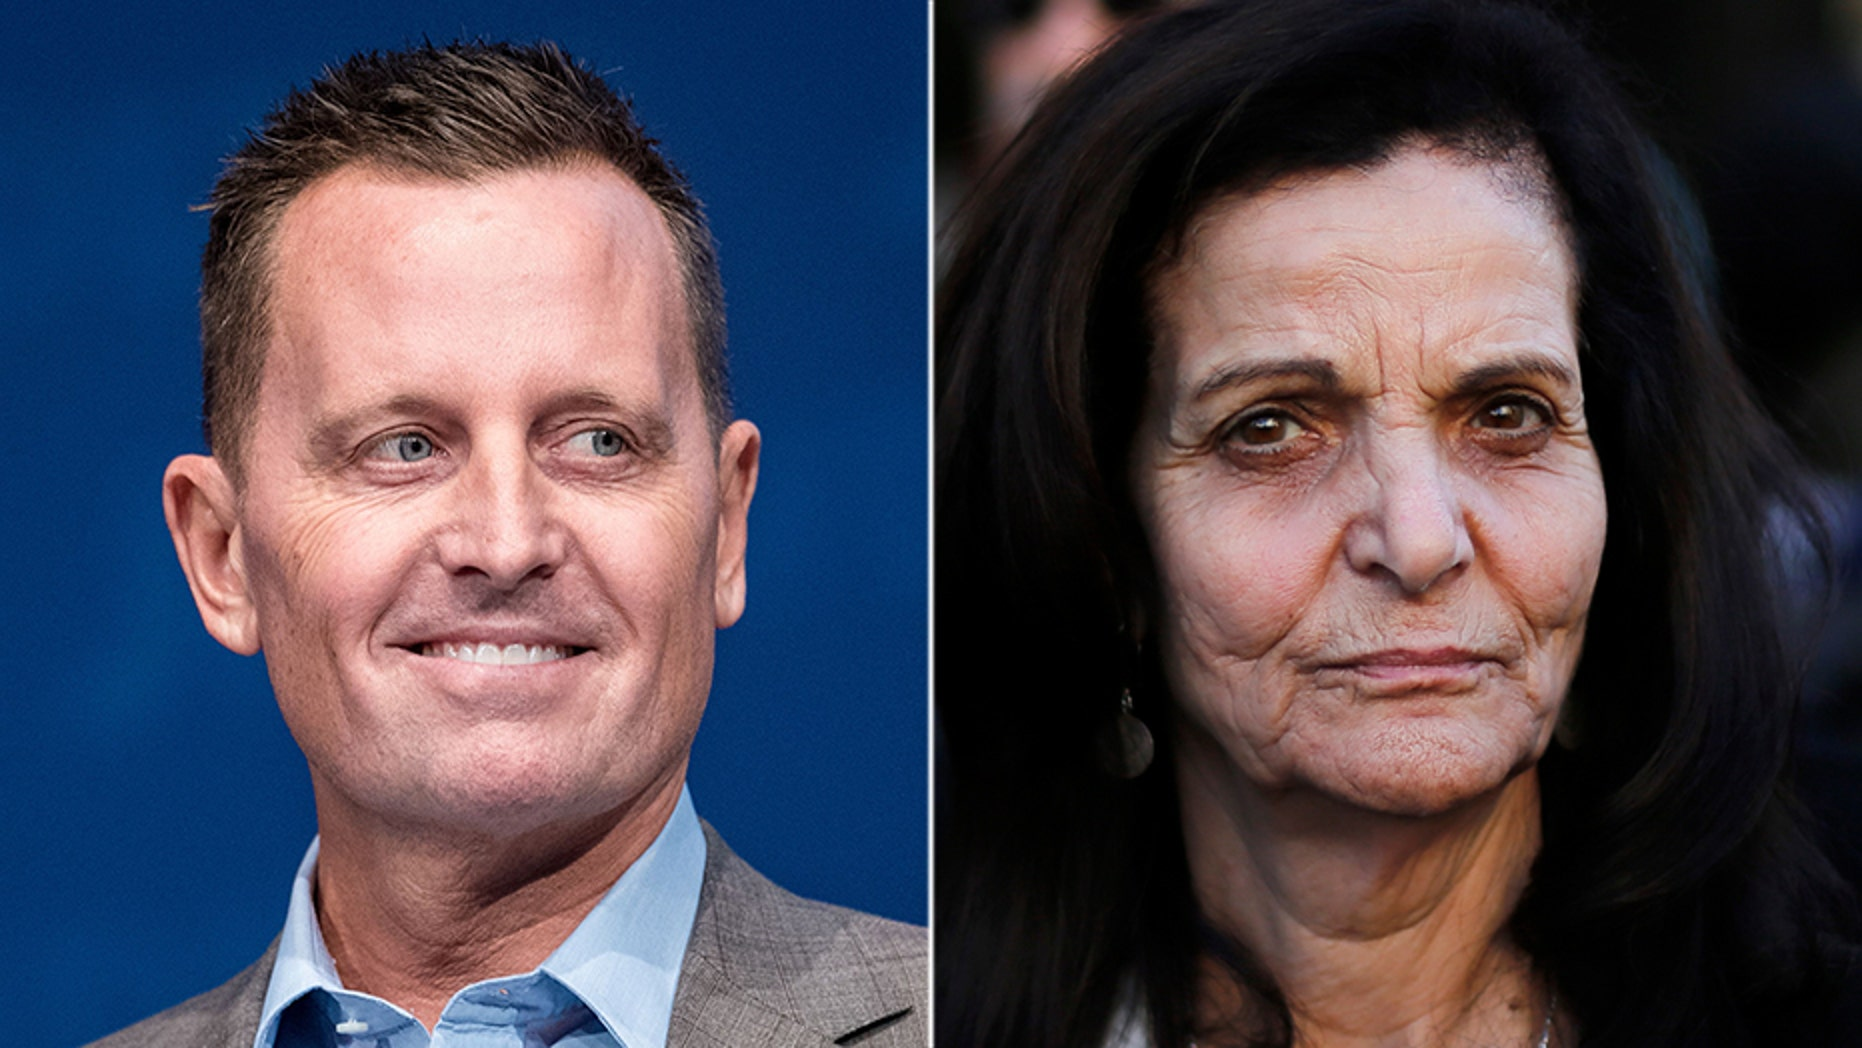 Richard Grenell (left) has called on authorities to anathema Rasmea Odeh (right) from entering Germany on Mar 15, when she is slated to broach a pronounce in Berlin.